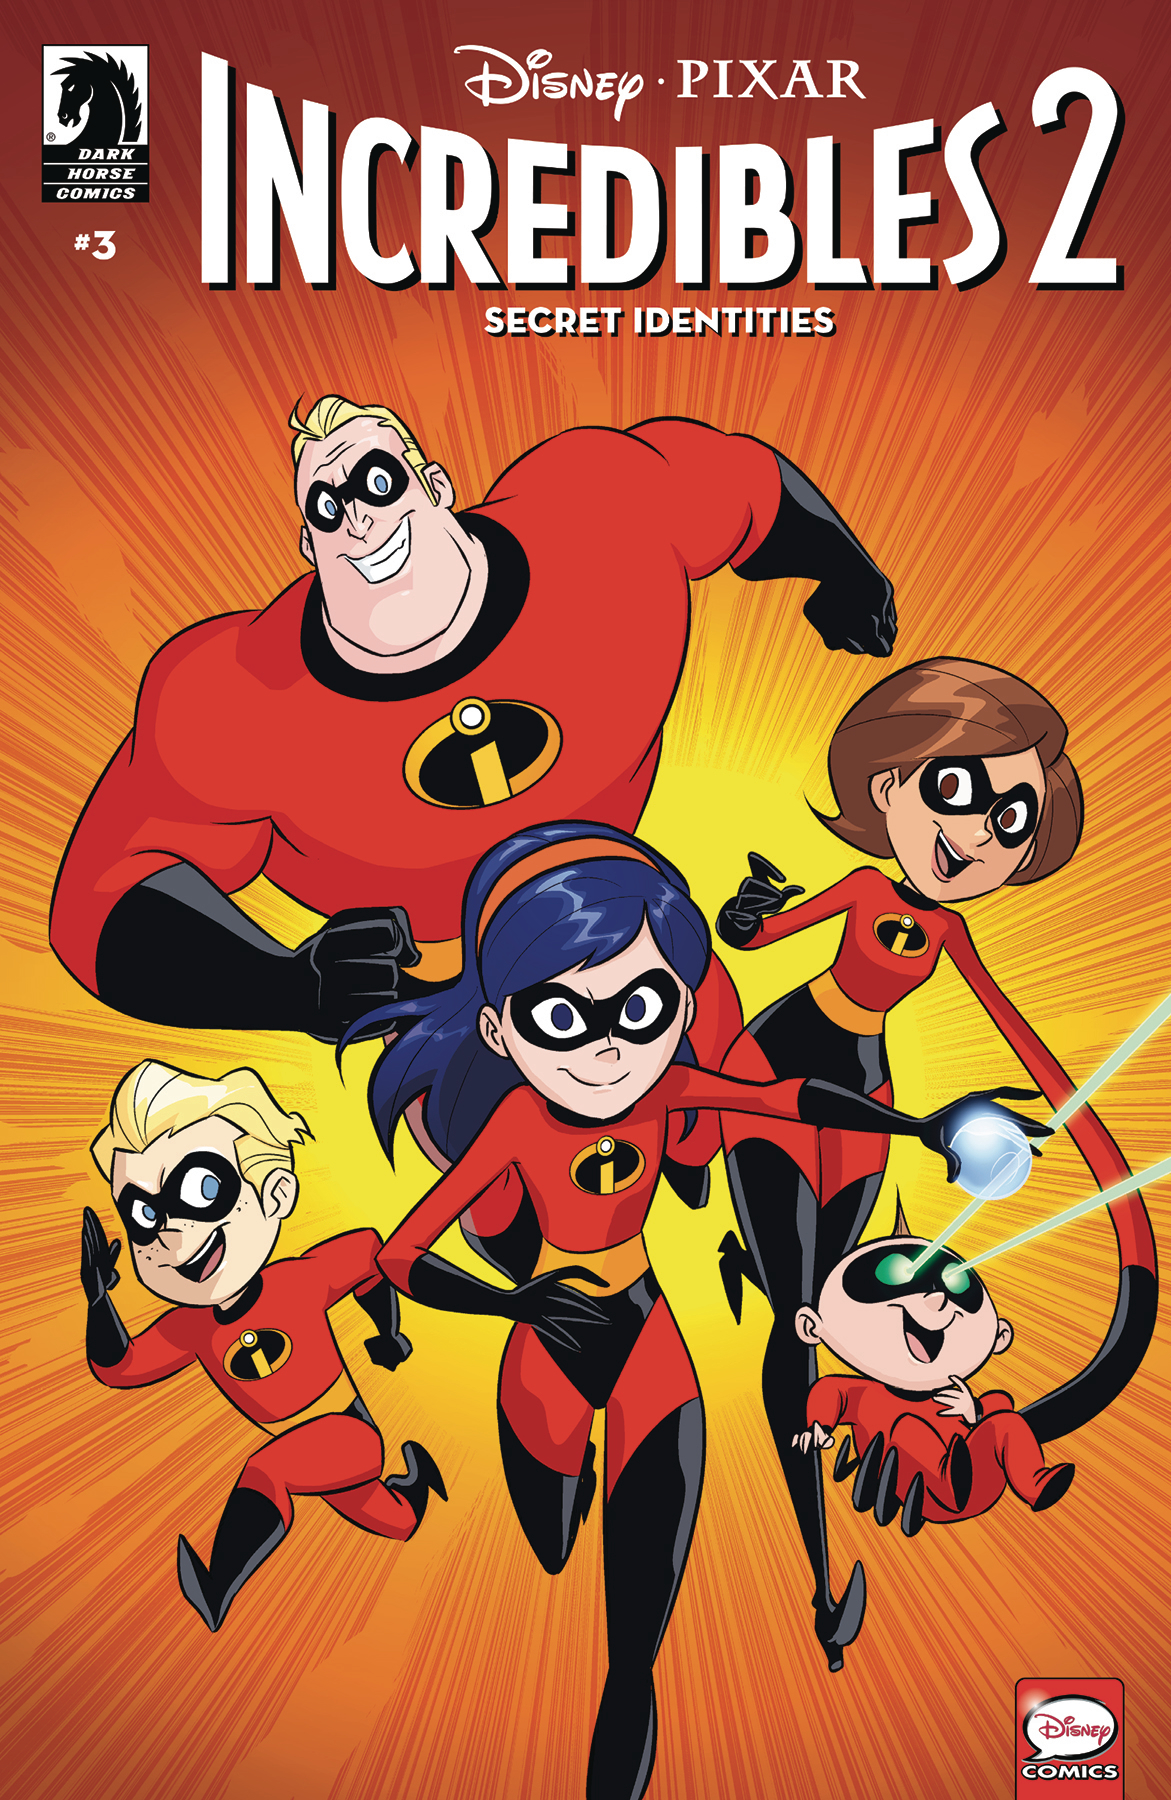 DISNEY INCREDIBLES 2 SECRET IDENTITIES #3 (OF 3) CVR A CLAUD